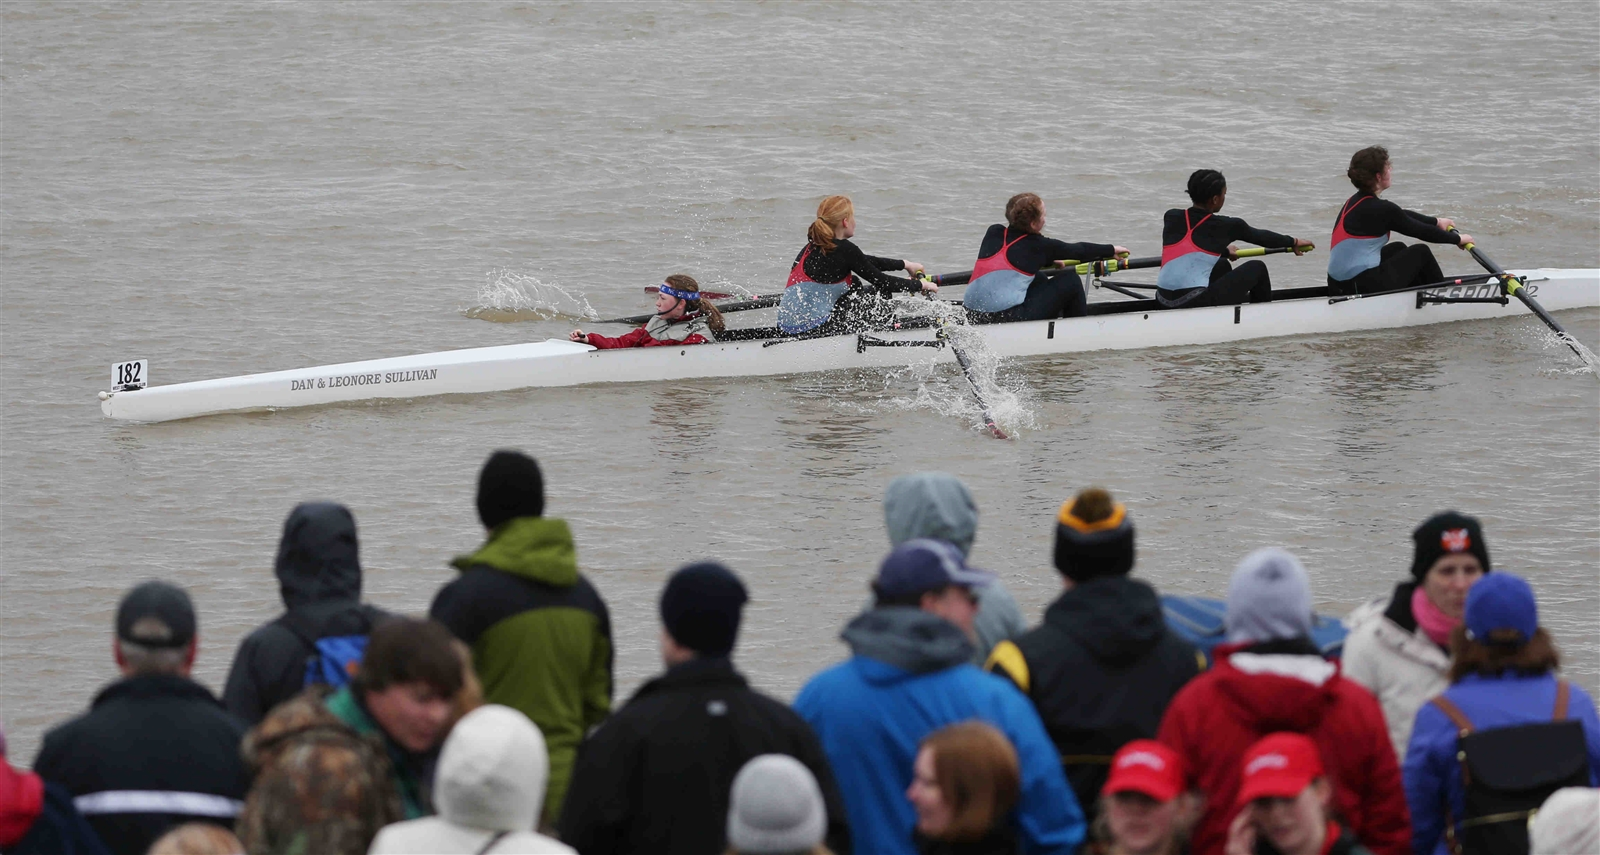 City Honors Women's JV4 competes in their time trial. Thirty teams from Western New York and Canada, including City Honors, Mount St. Maryu2019s, Nardin Academy, Nichols School, St. Josephu2019s Collegiate Institute, Canisius High School and West Side Rowing Club Juniors participated in the 1,500-meter time-trial event at West Side Rowing Club on Sunday, May 7, 2017.